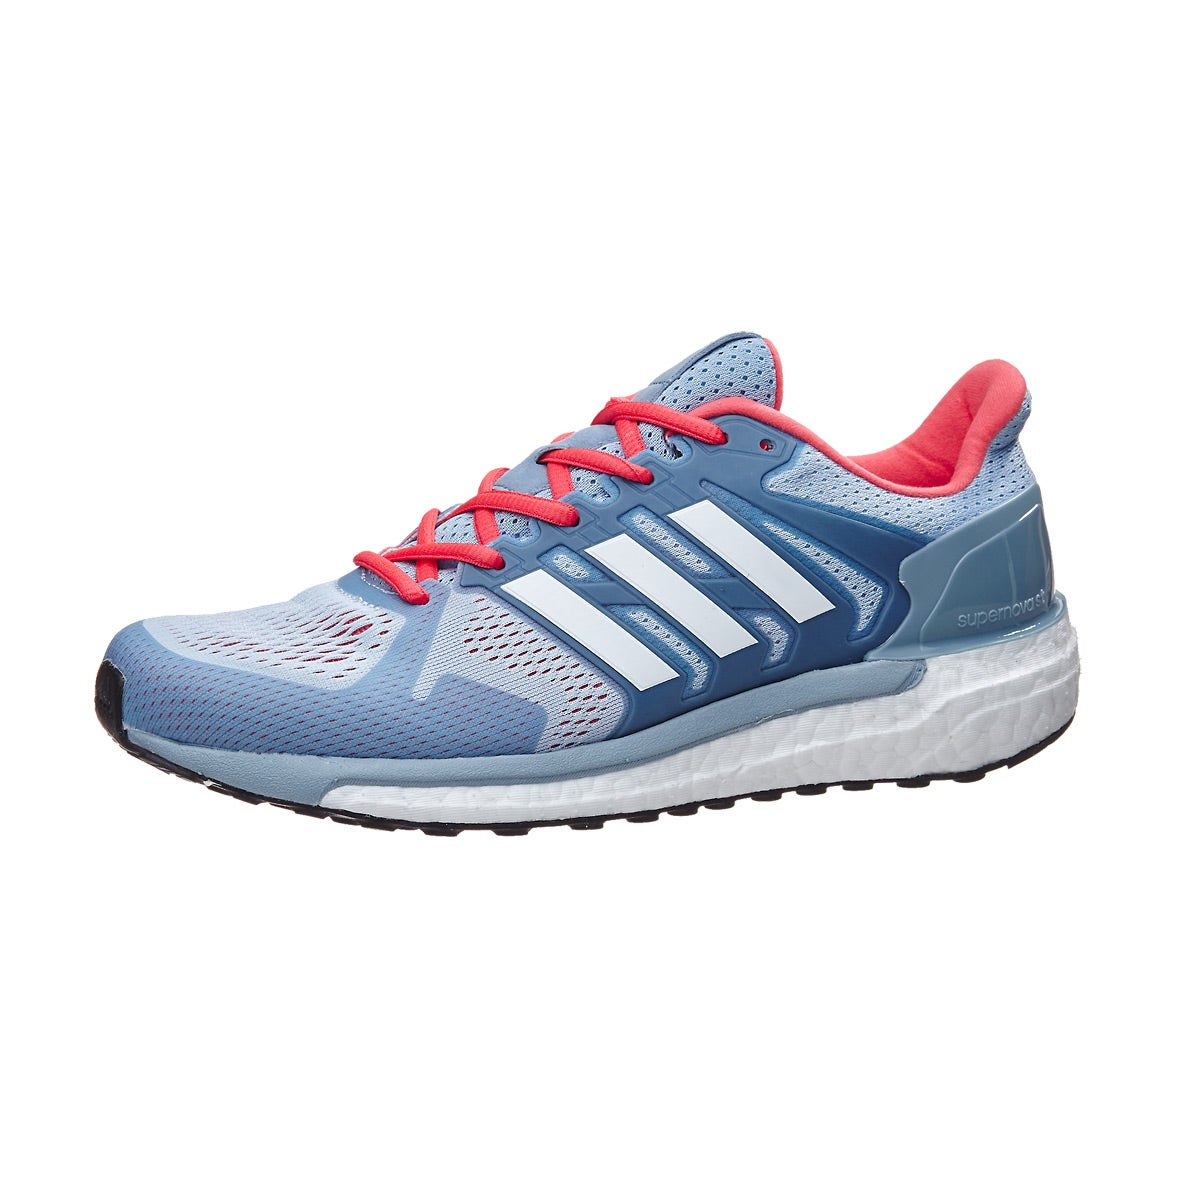 adidas Supernova ST Women s Shoes Easy Blue Coral 360° View ... 442589296